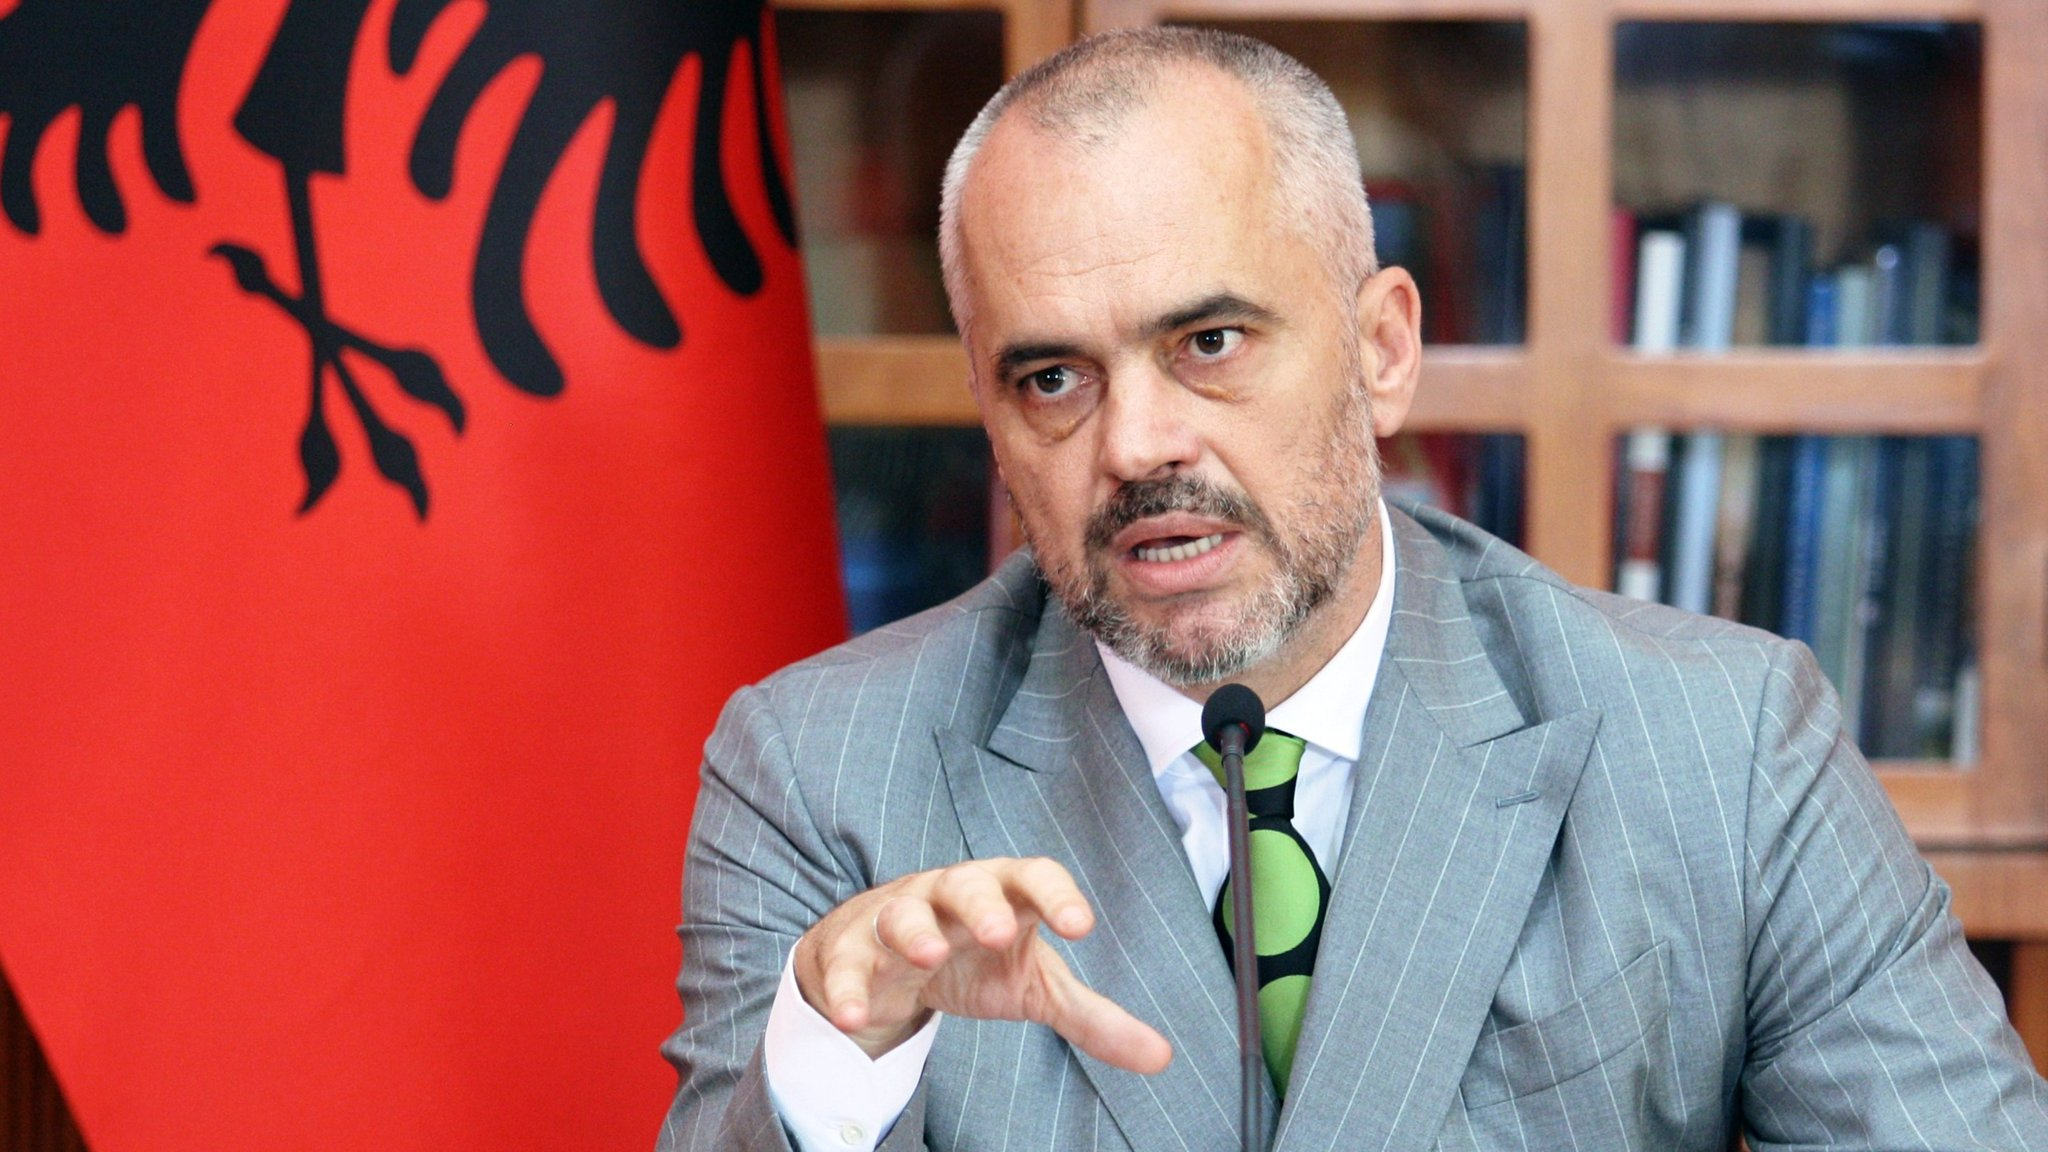 Albania has the greatest freedom for slander on the planet, Rama says